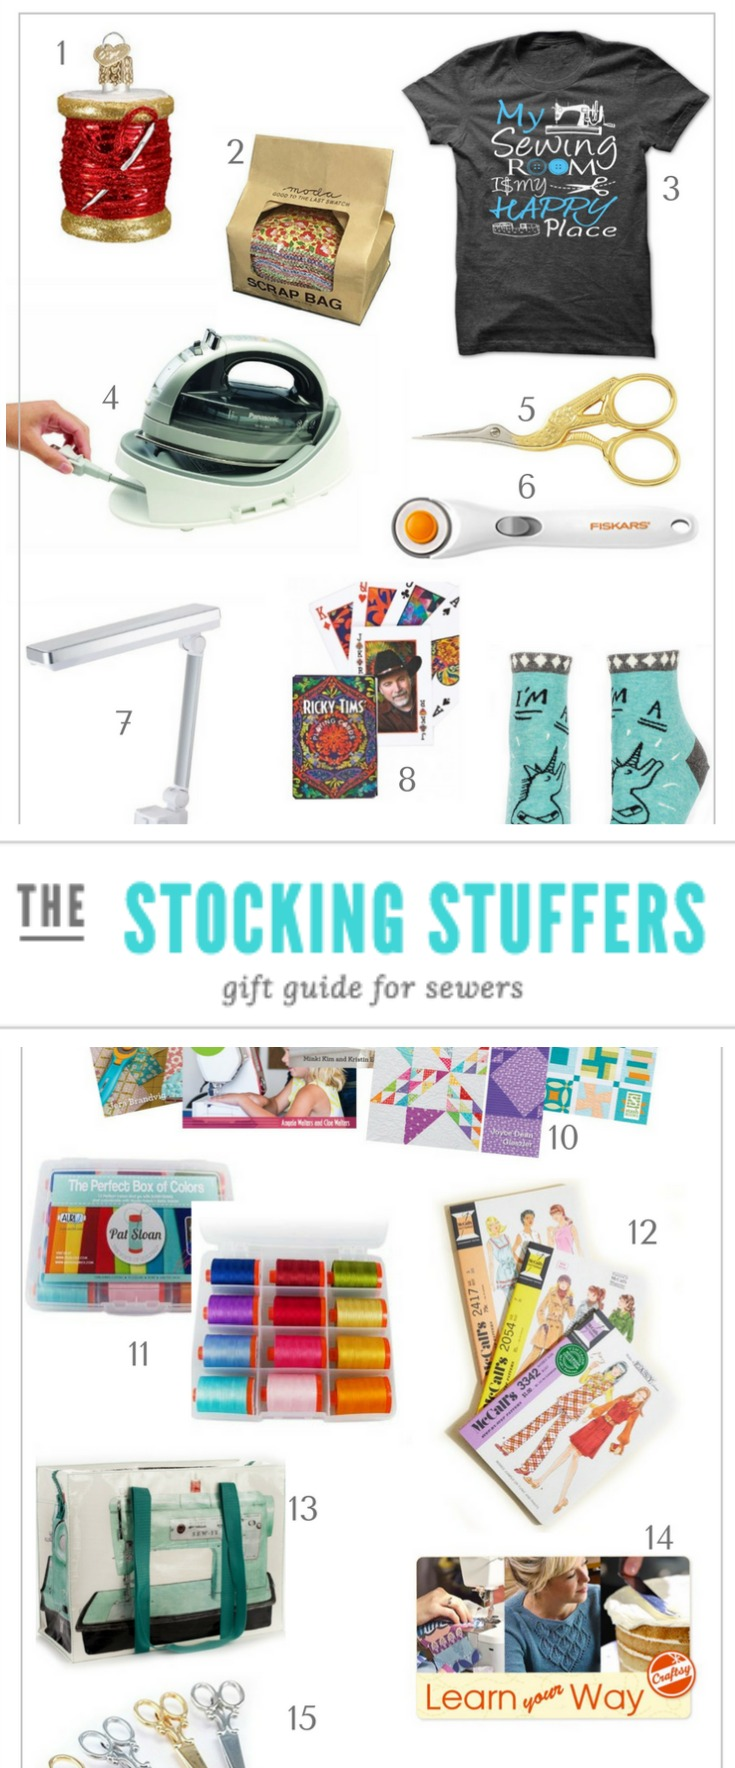 Give the perfect gift to your stitching friends this season with these sewing inspired stocking stuffers that won't break the bank. .